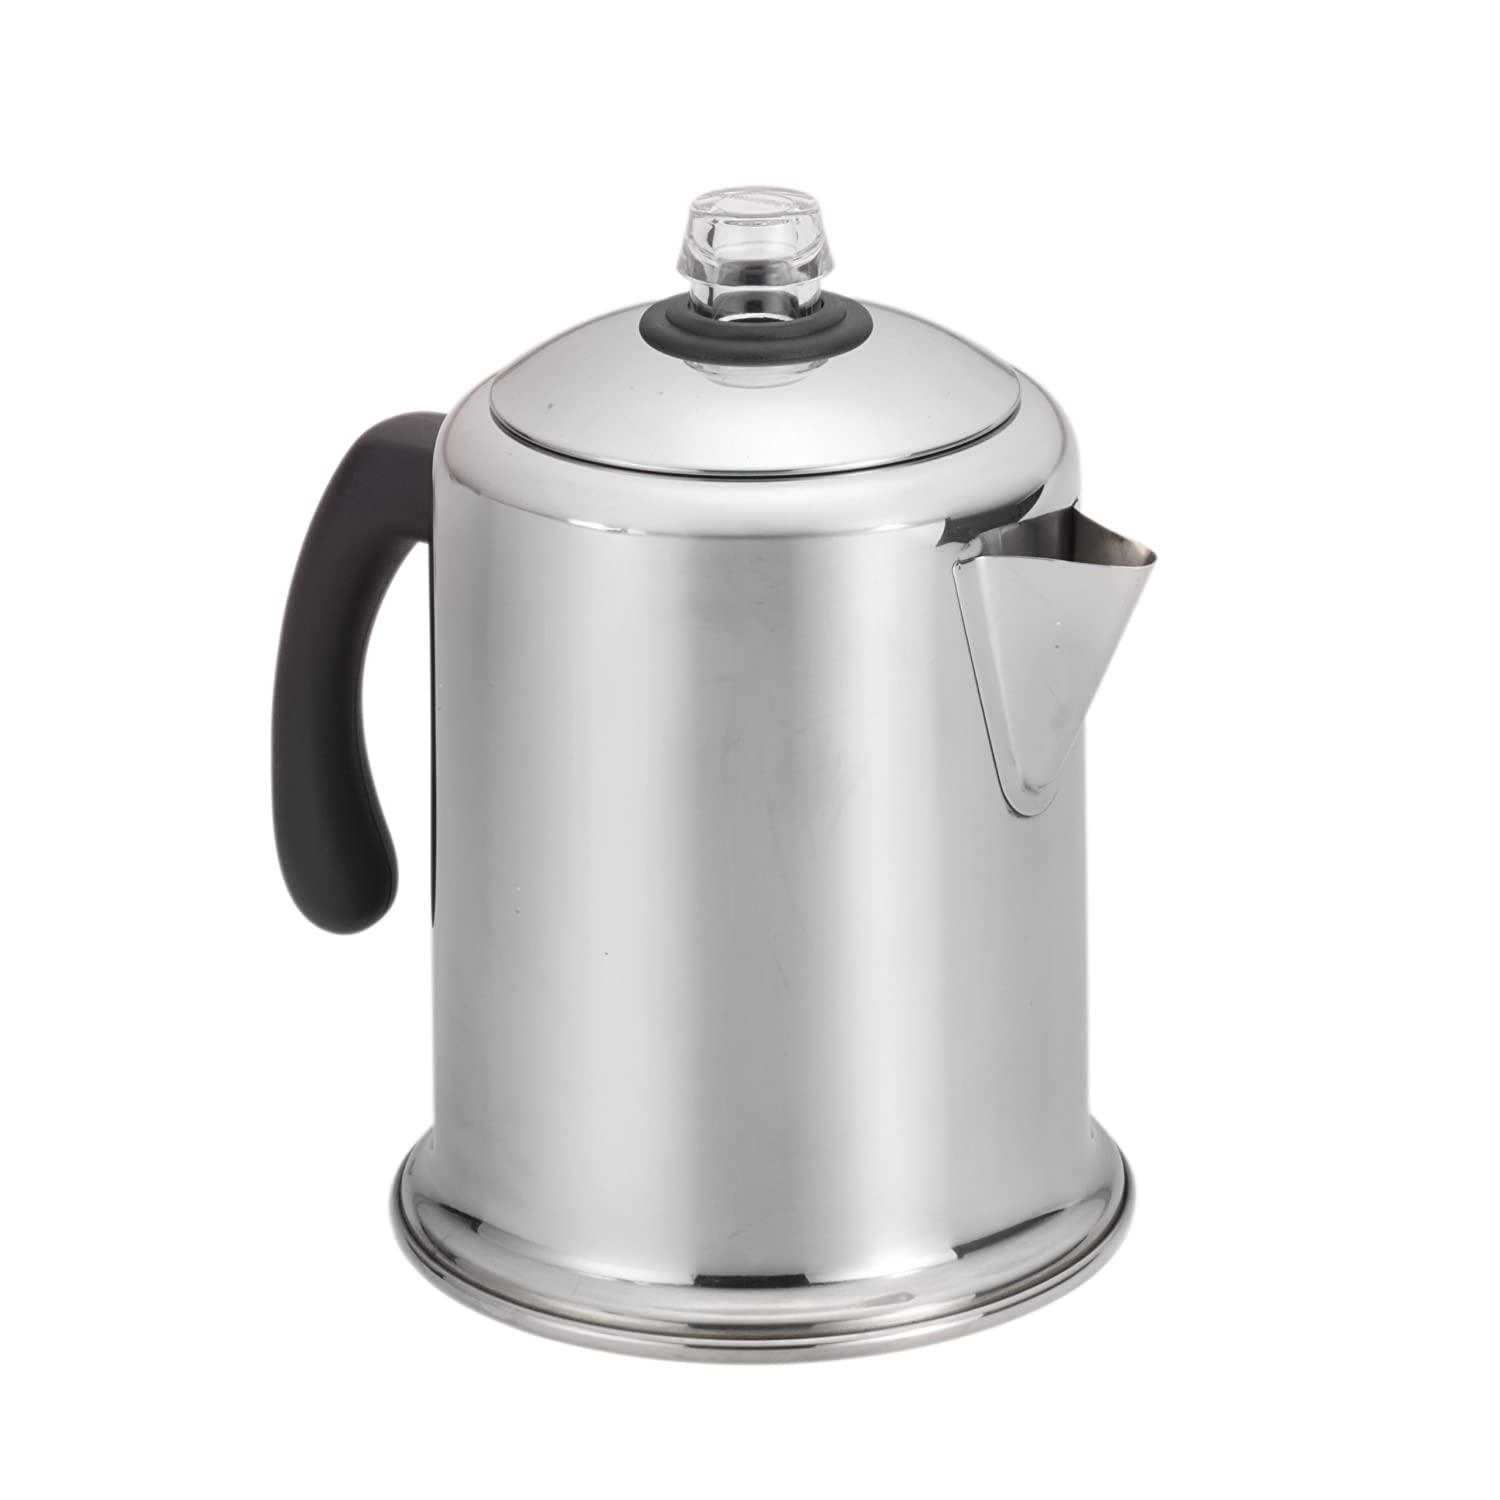 Farberware s steel 8 cup coffee maker percolator stove top for Best coffee percolator